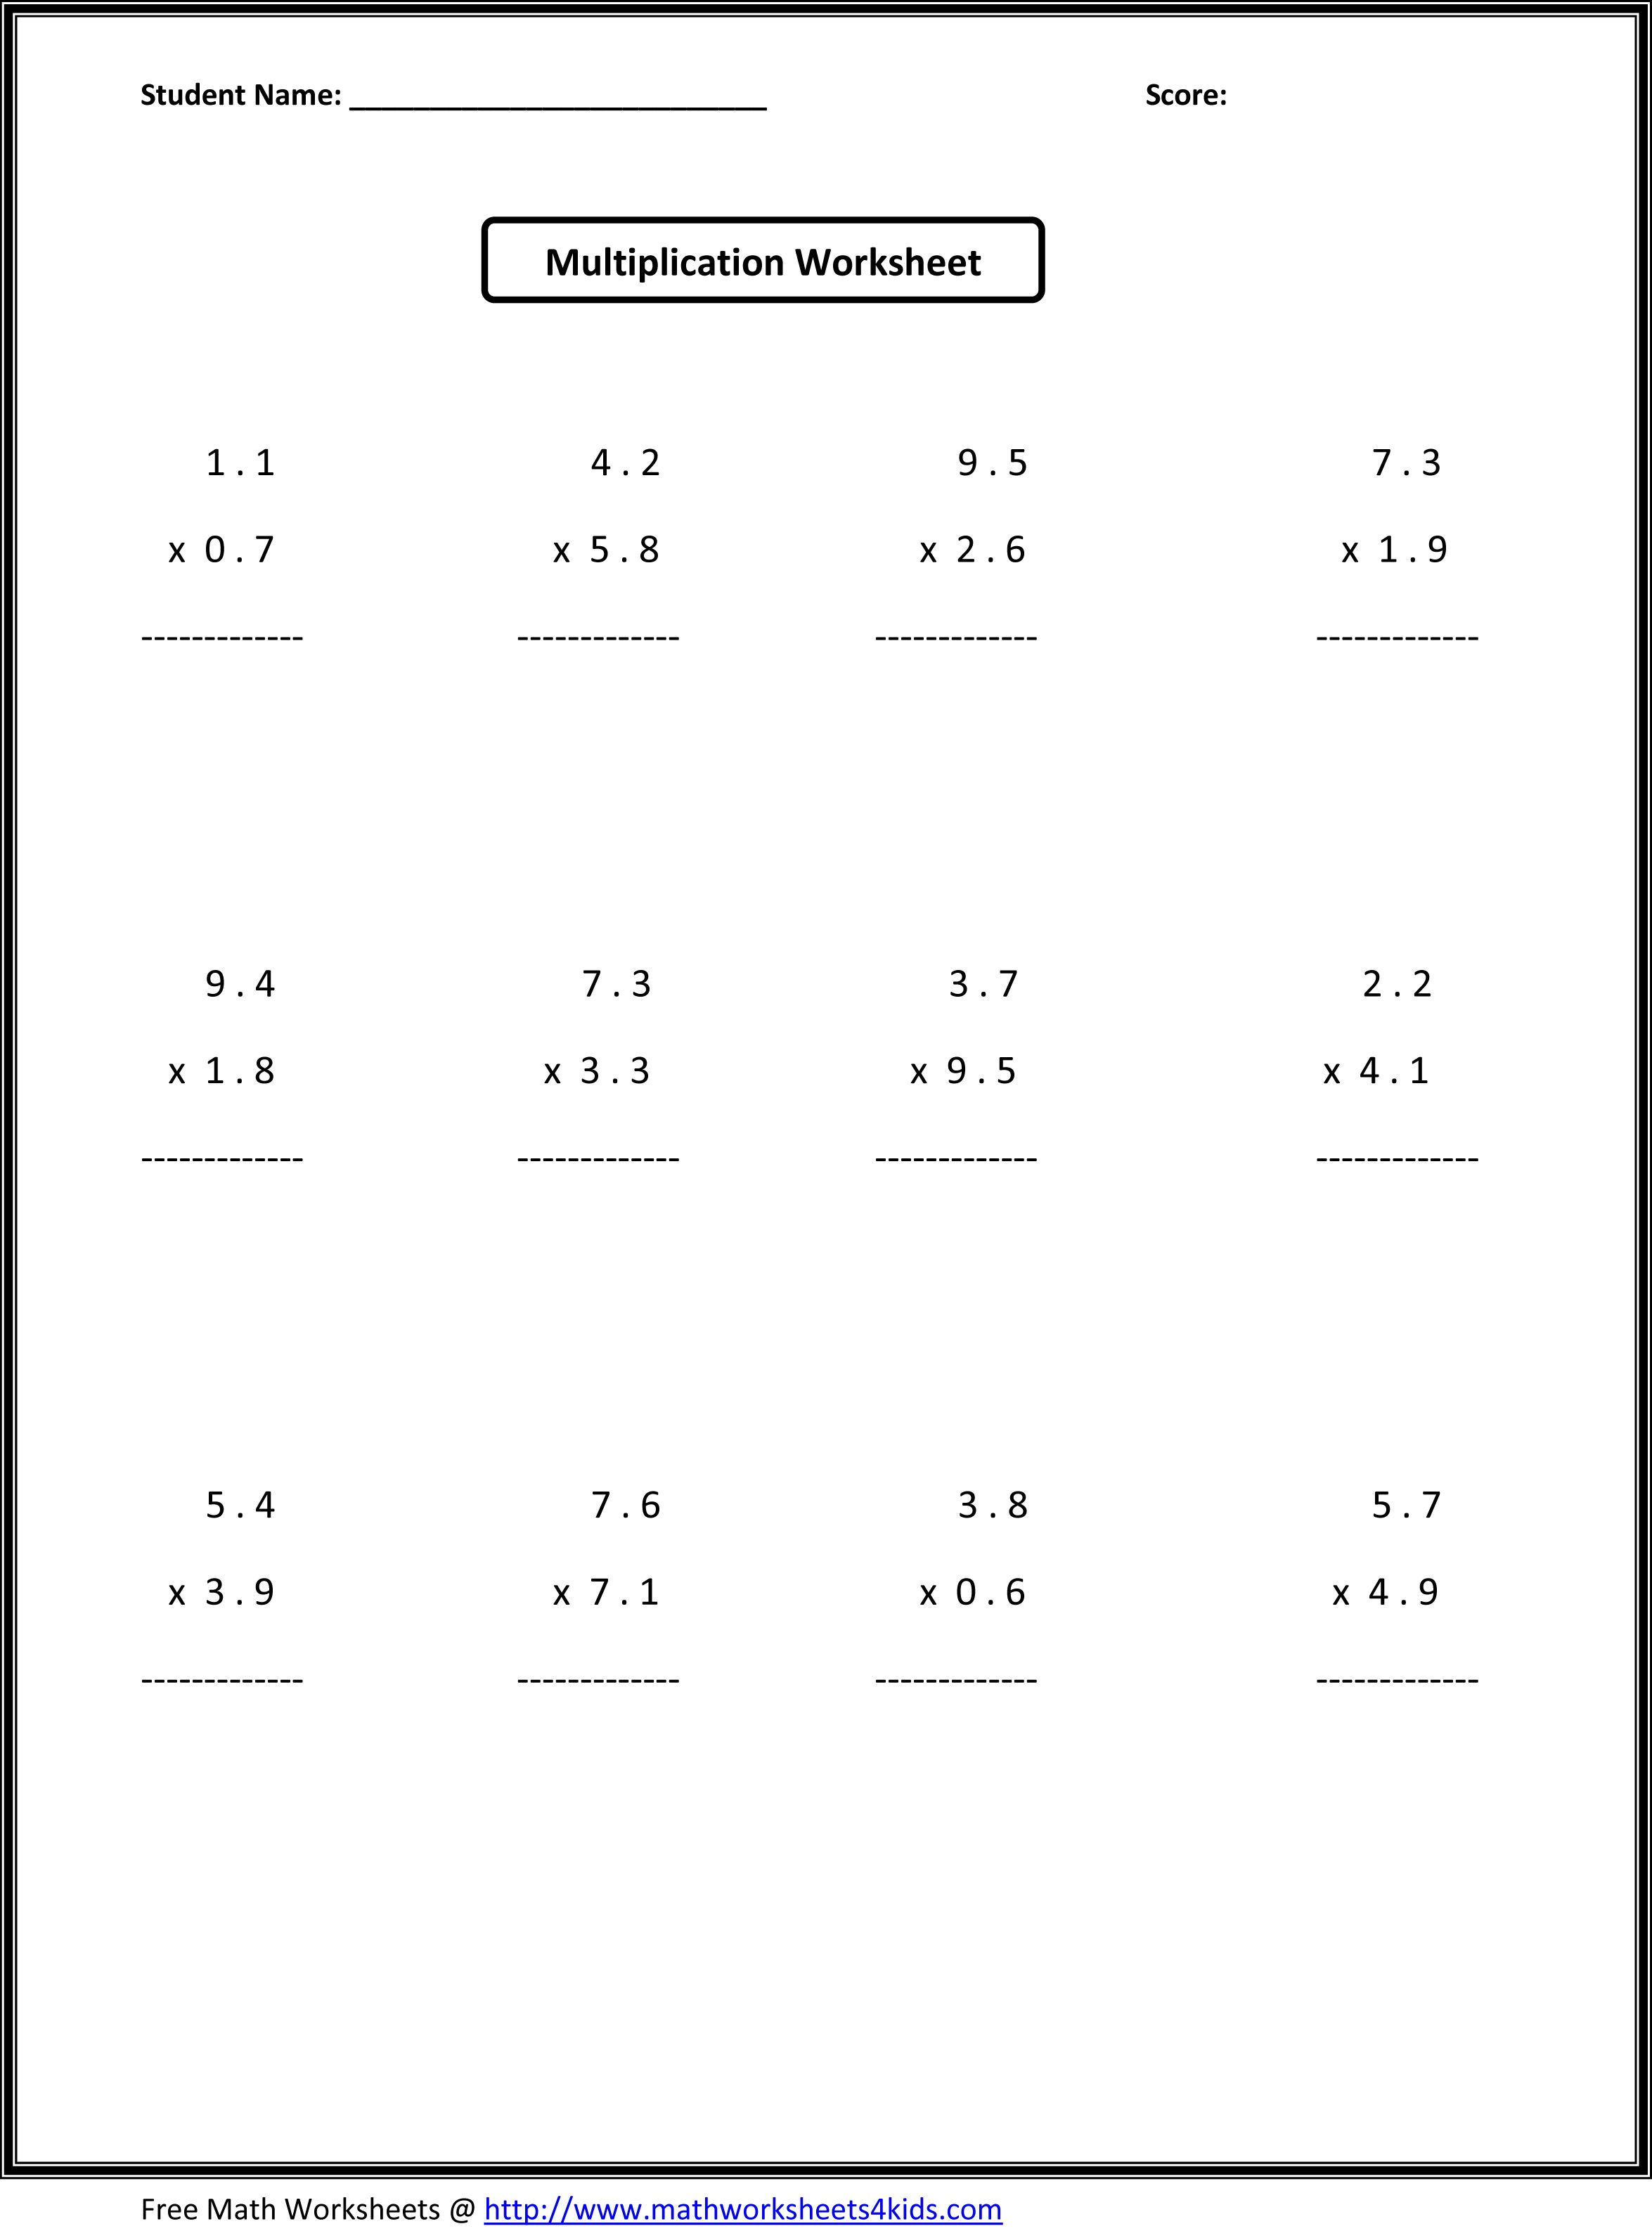 Sixth Grade Math Worksheets 7th grade math worksheets